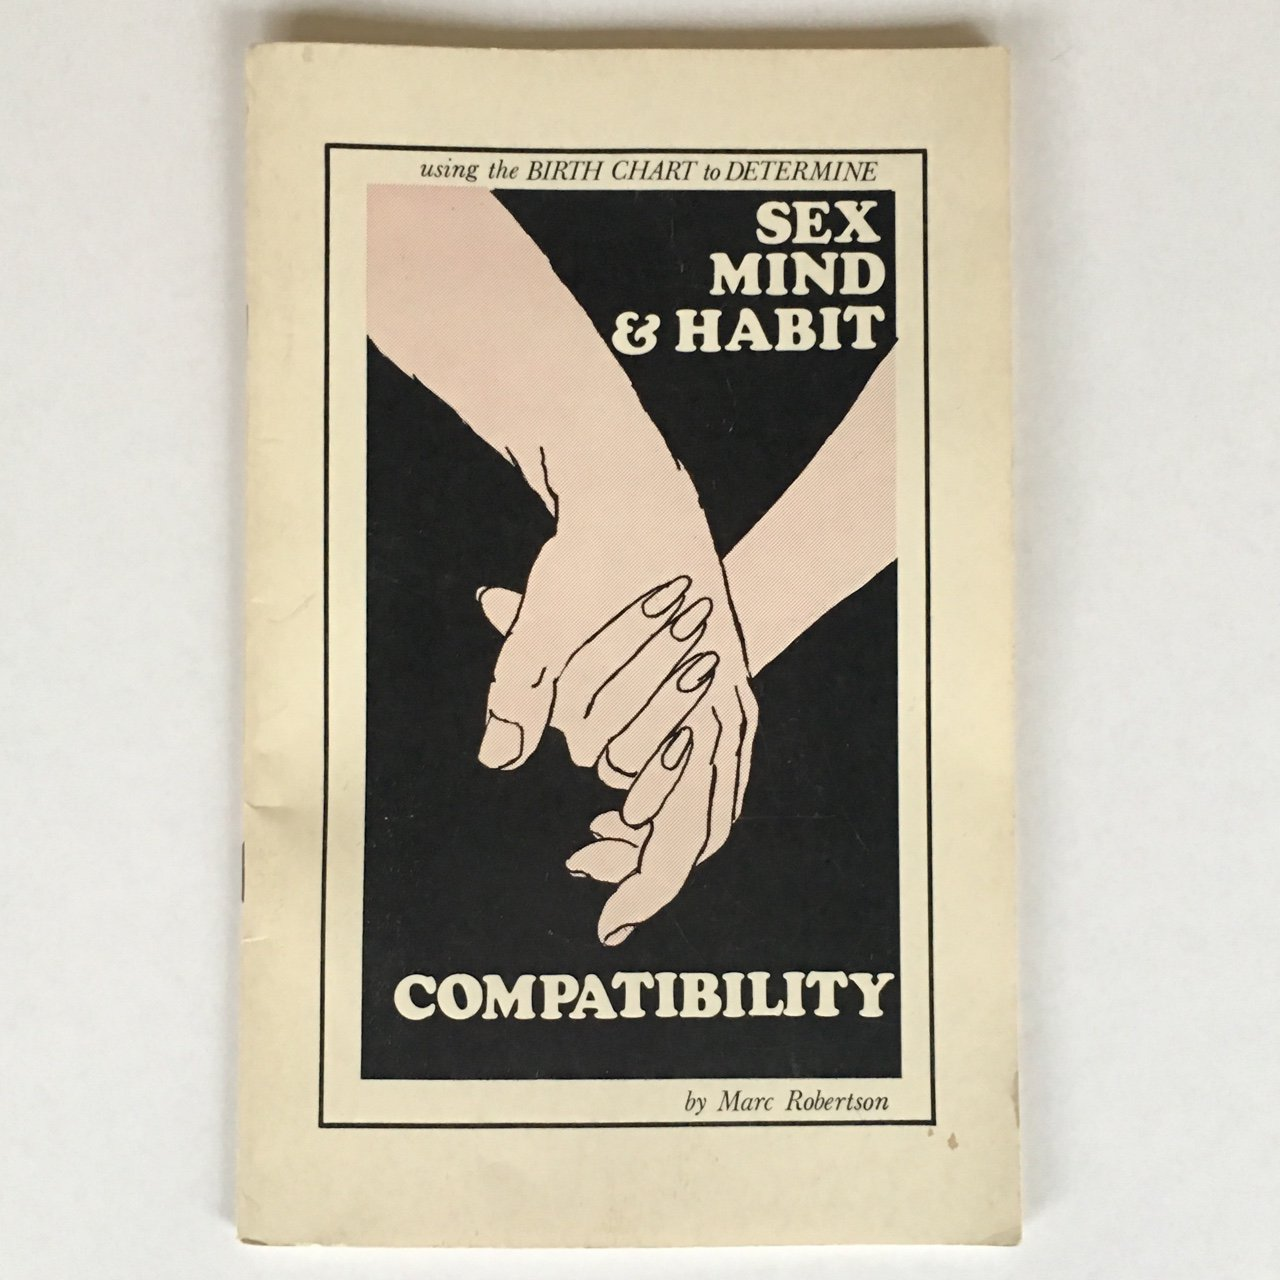 Sex mind habit compatibility marc robertson 1975 first sex mind habit compatibility marc robertson 1975 first printing using the birth chart to determine sex mind habit compatibility marc robertson nvjuhfo Choice Image